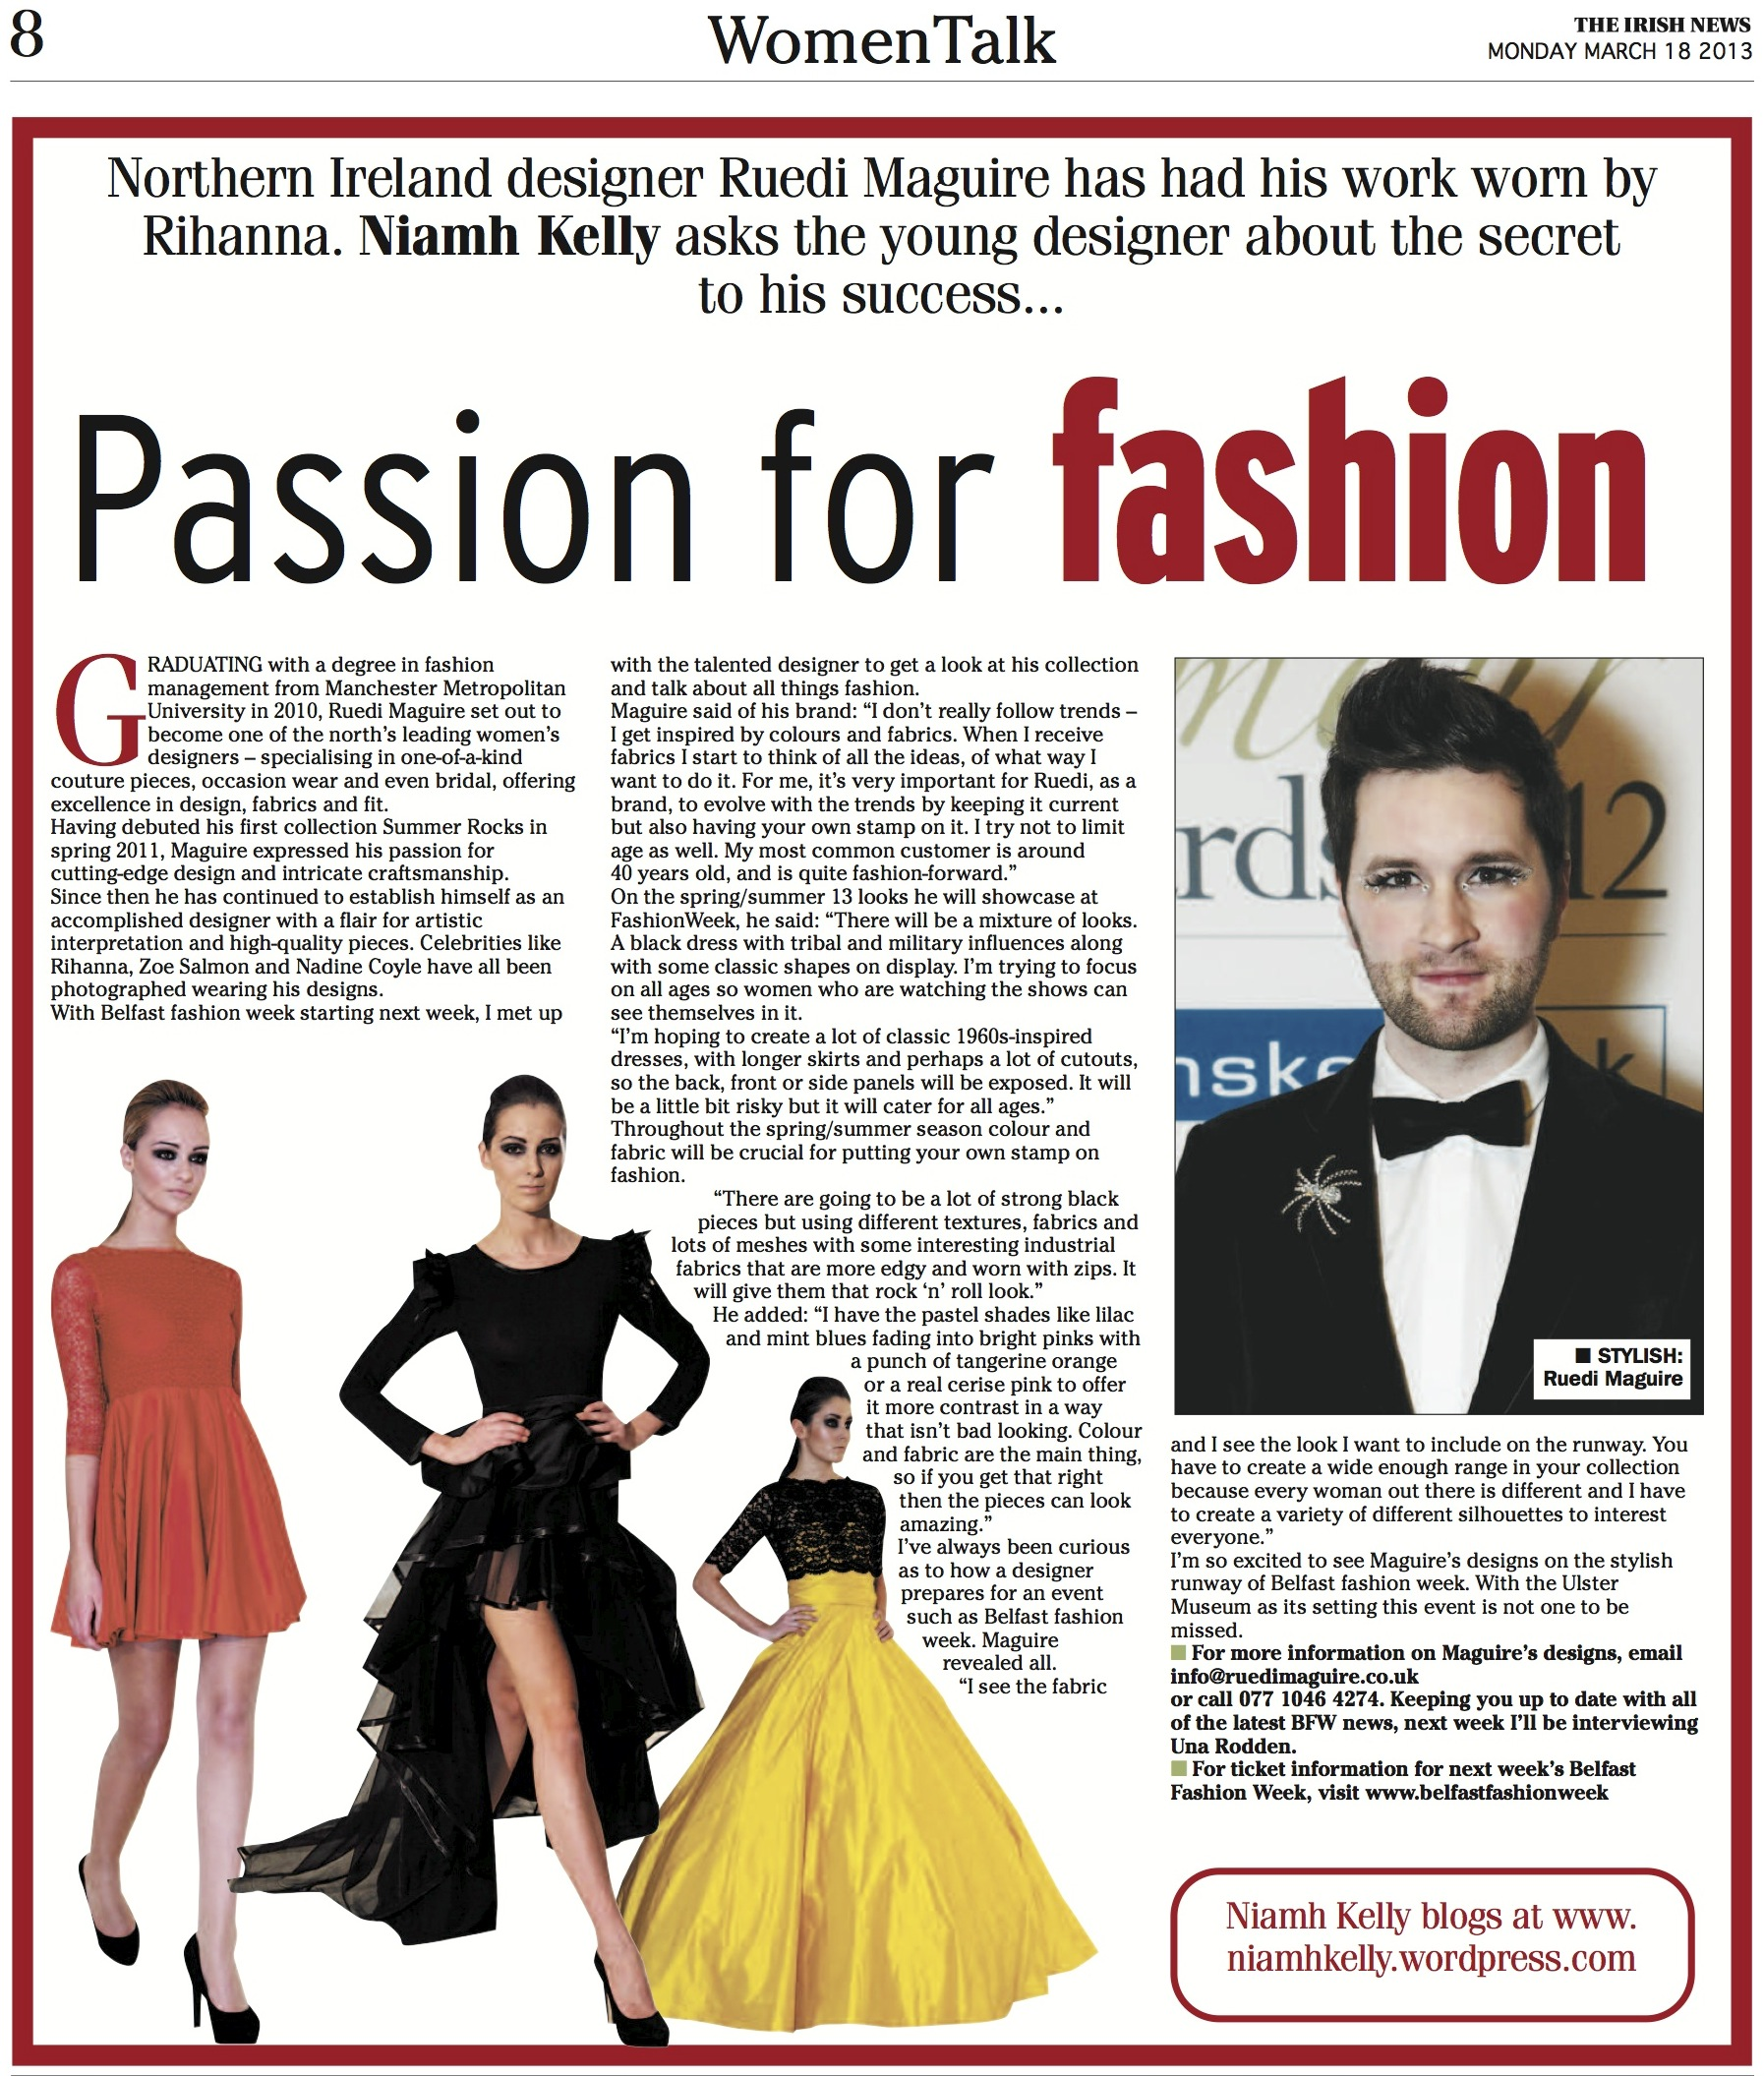 Passion For Fashion, Women Talk, THE IRISH NEWS, MONDAY MARCH 18 2013